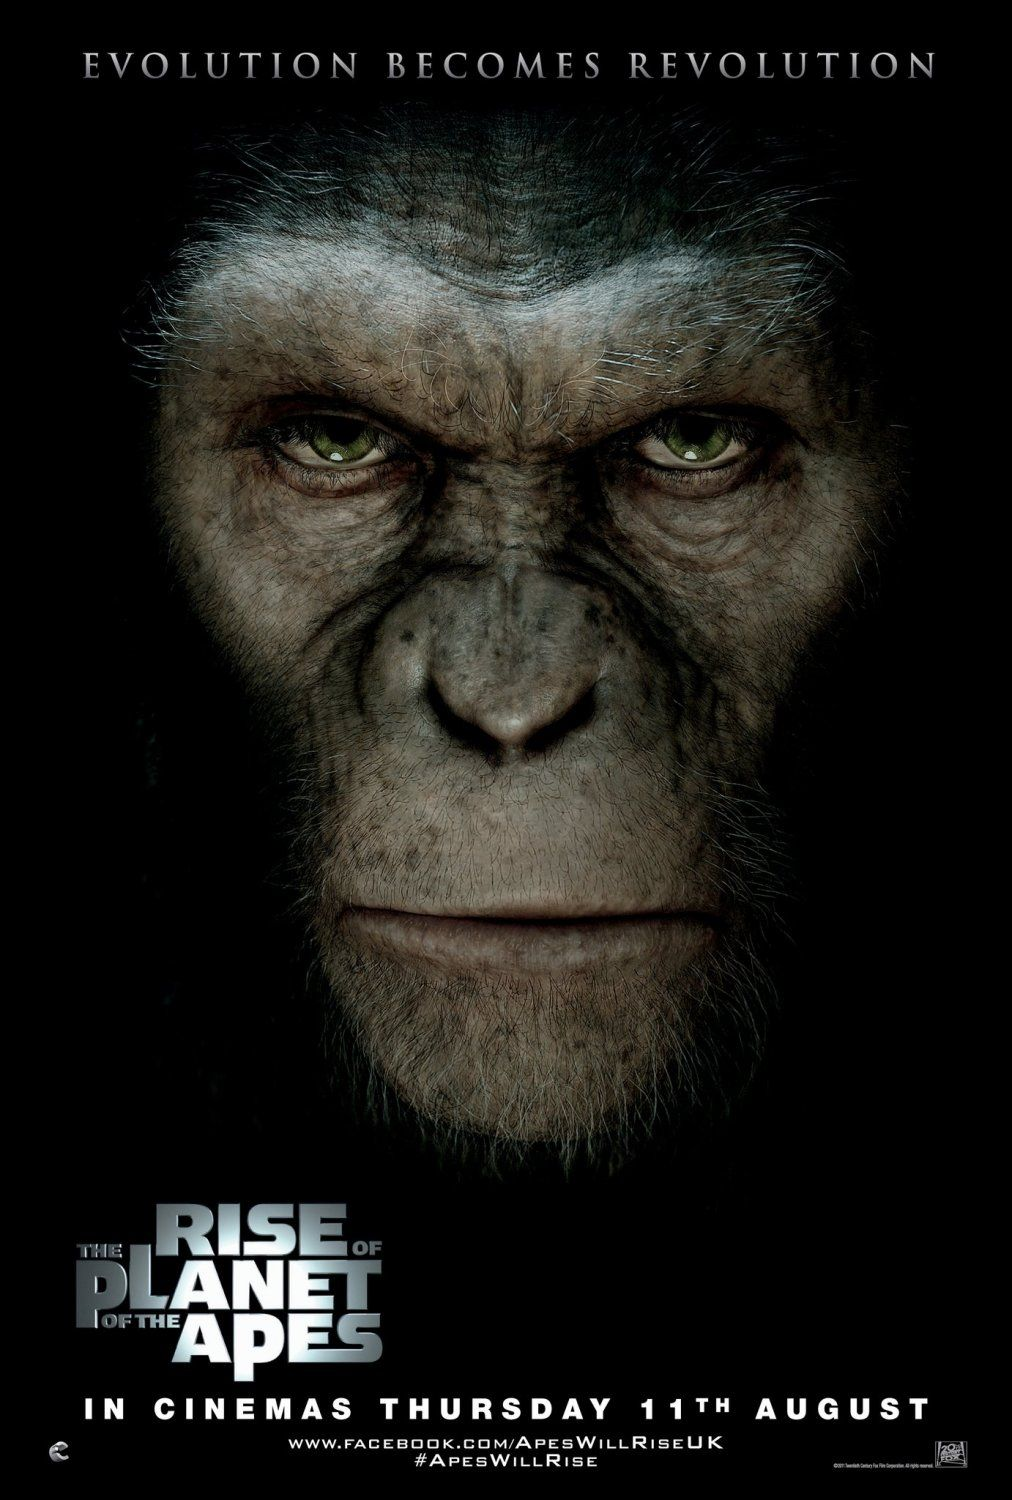 50/50, RISE OF THE PLANET OF THE APES, ARTHUR CHRISTMAS ... Joseph Gordon Levitt Single